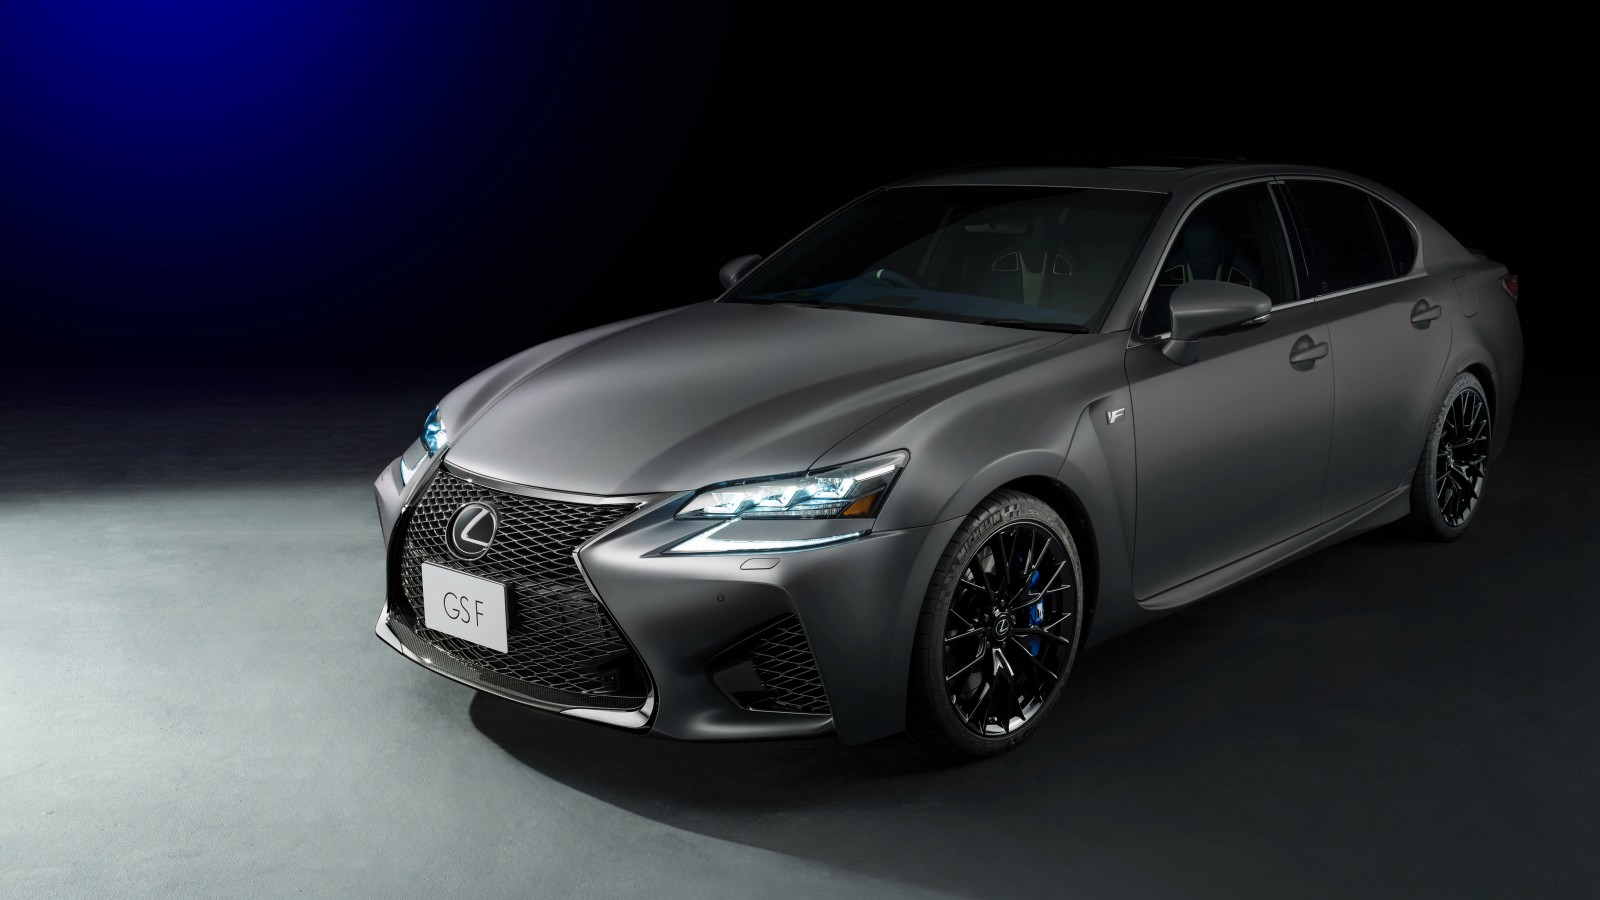 2018 lexus gs f 10th anniversary limited edition 4k wallpaper hd car wallpapers id 8940. Black Bedroom Furniture Sets. Home Design Ideas